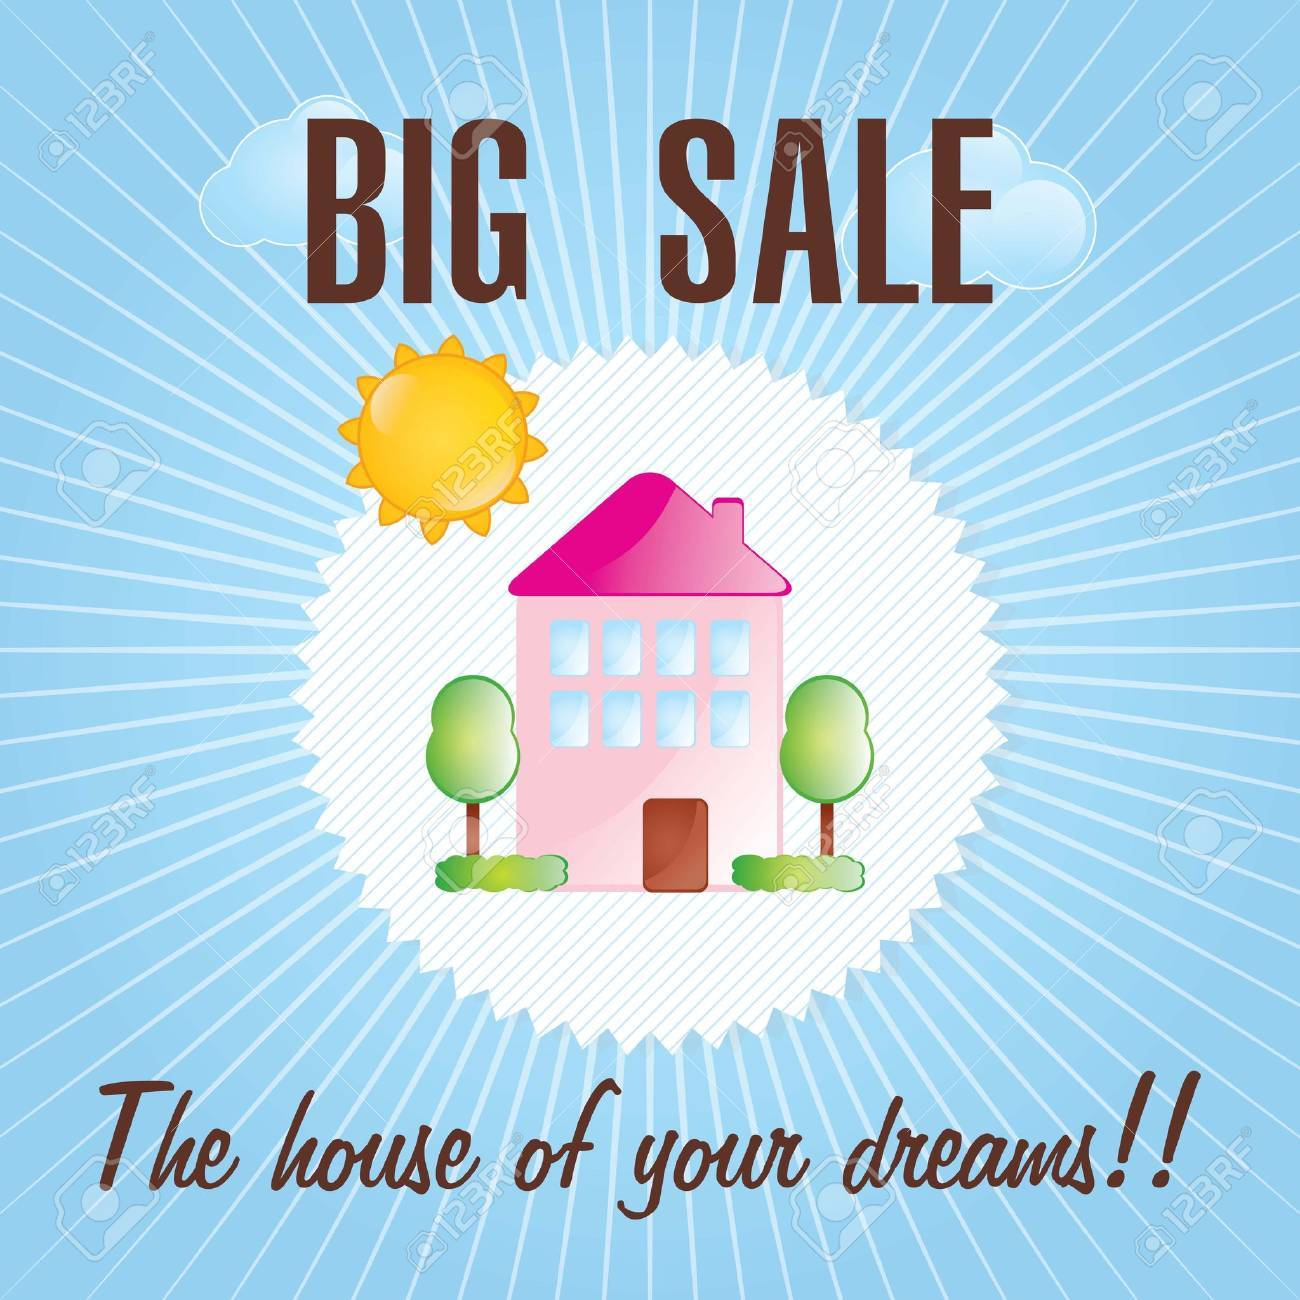 Home for sale  over blue background. vector illustration Stock Vector - 17623226